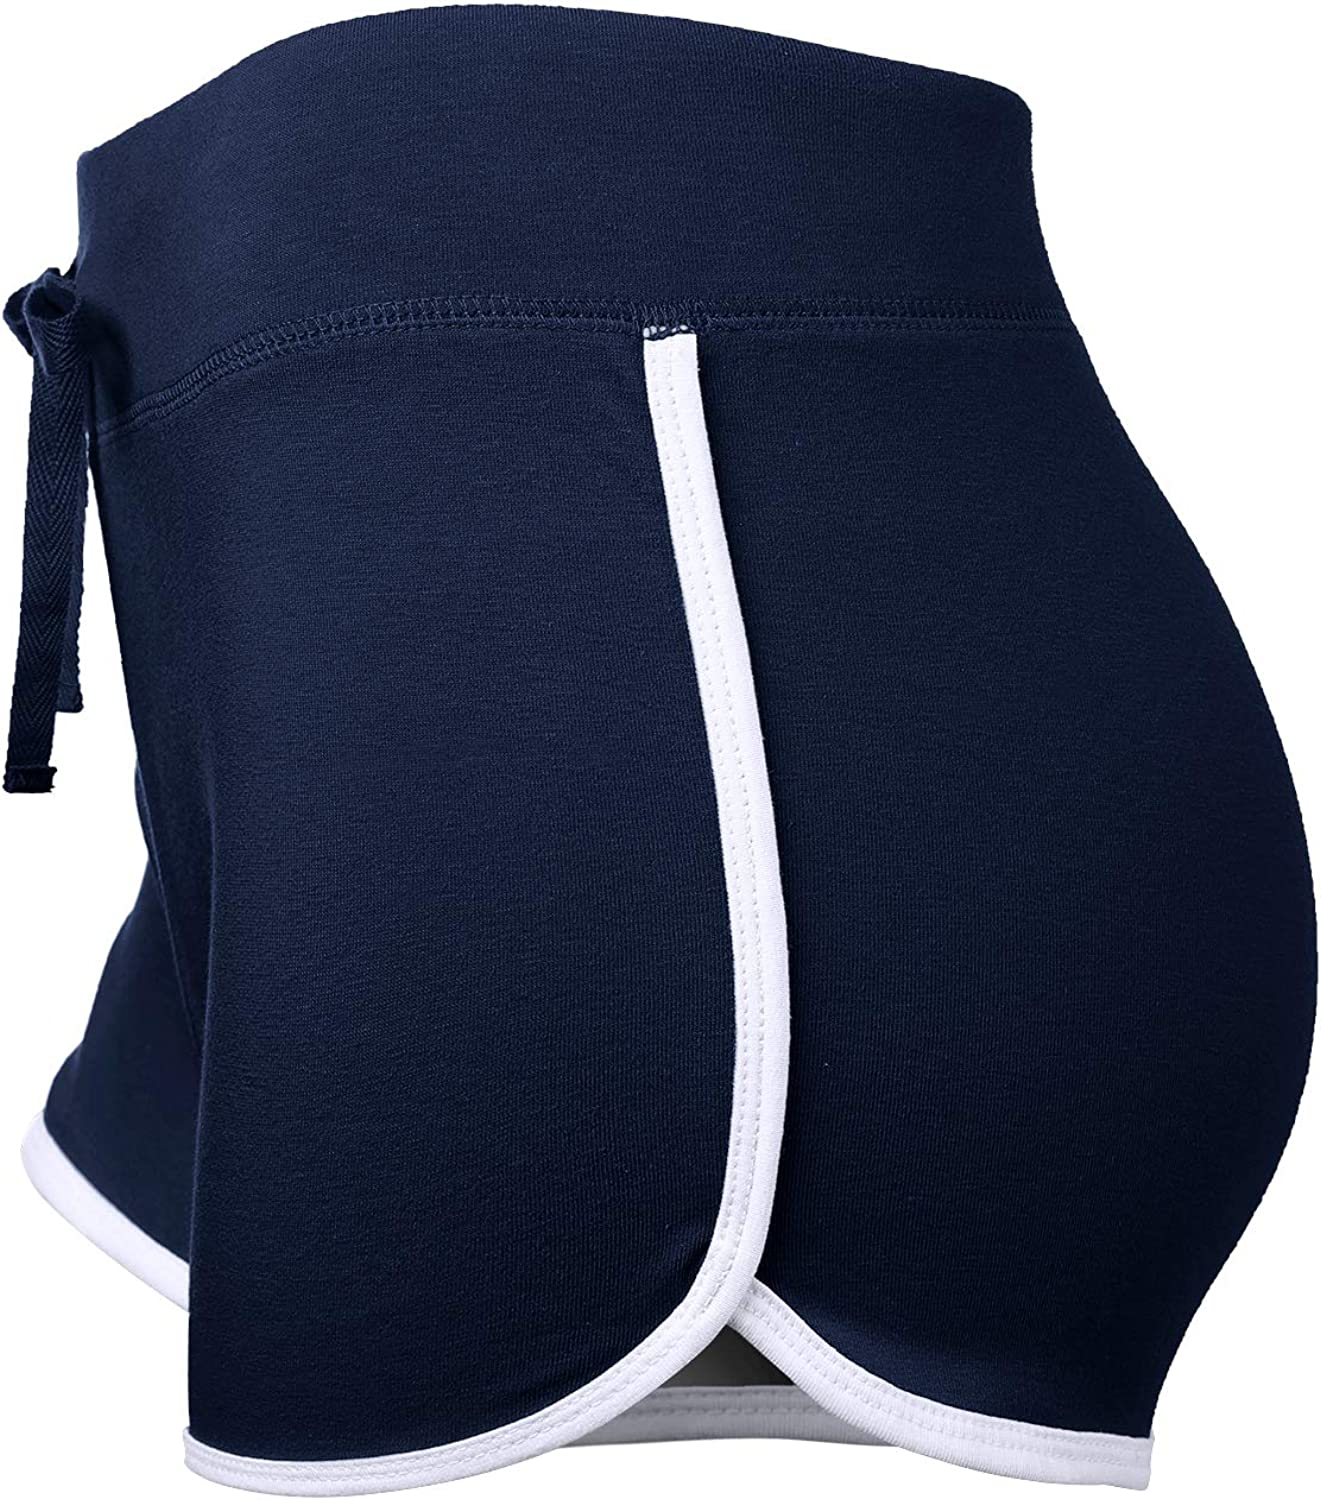 HATOPANTS Comfortable Active Fitted Stretchy Yoga Gym Mini Shorts